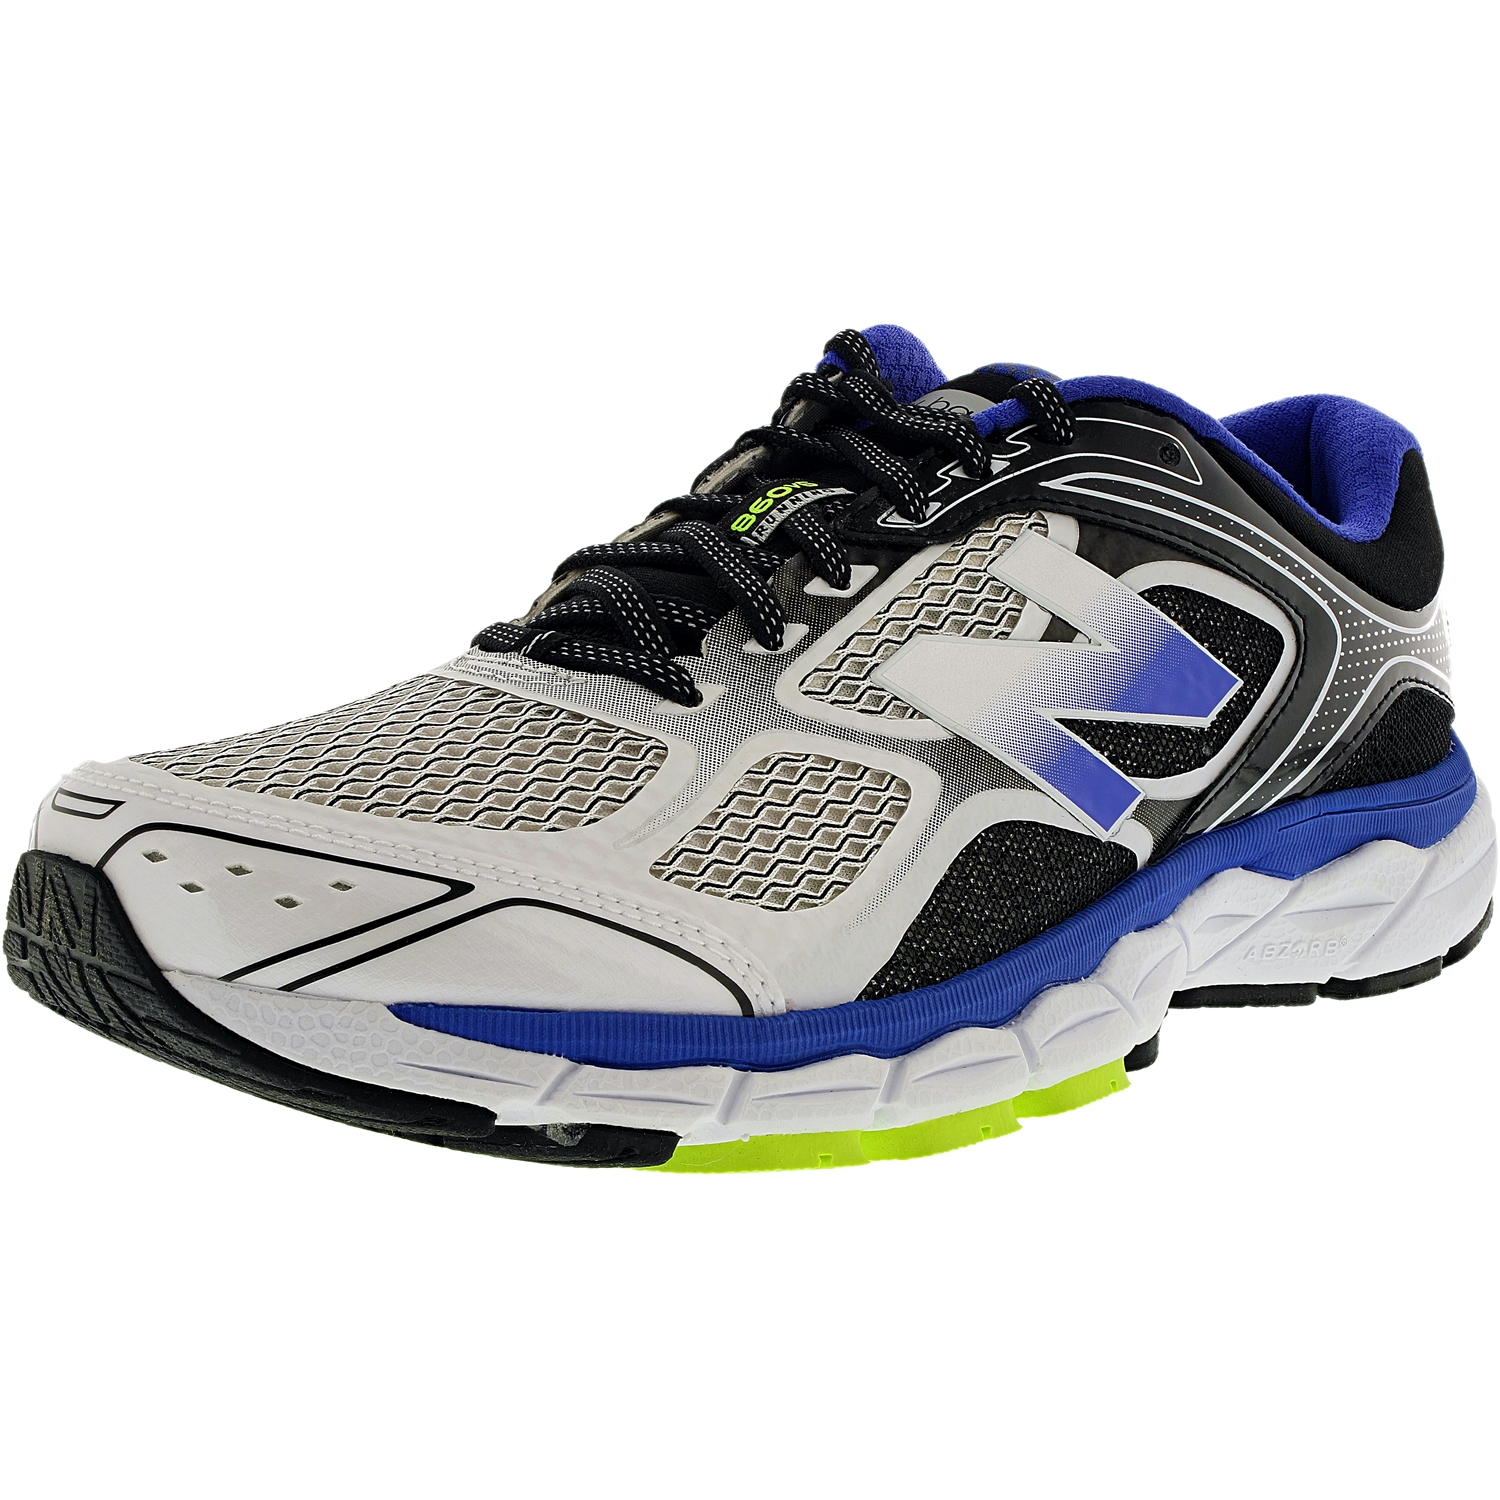 New Balance Men's M860 Ankle-High Synthetic Running Shoe